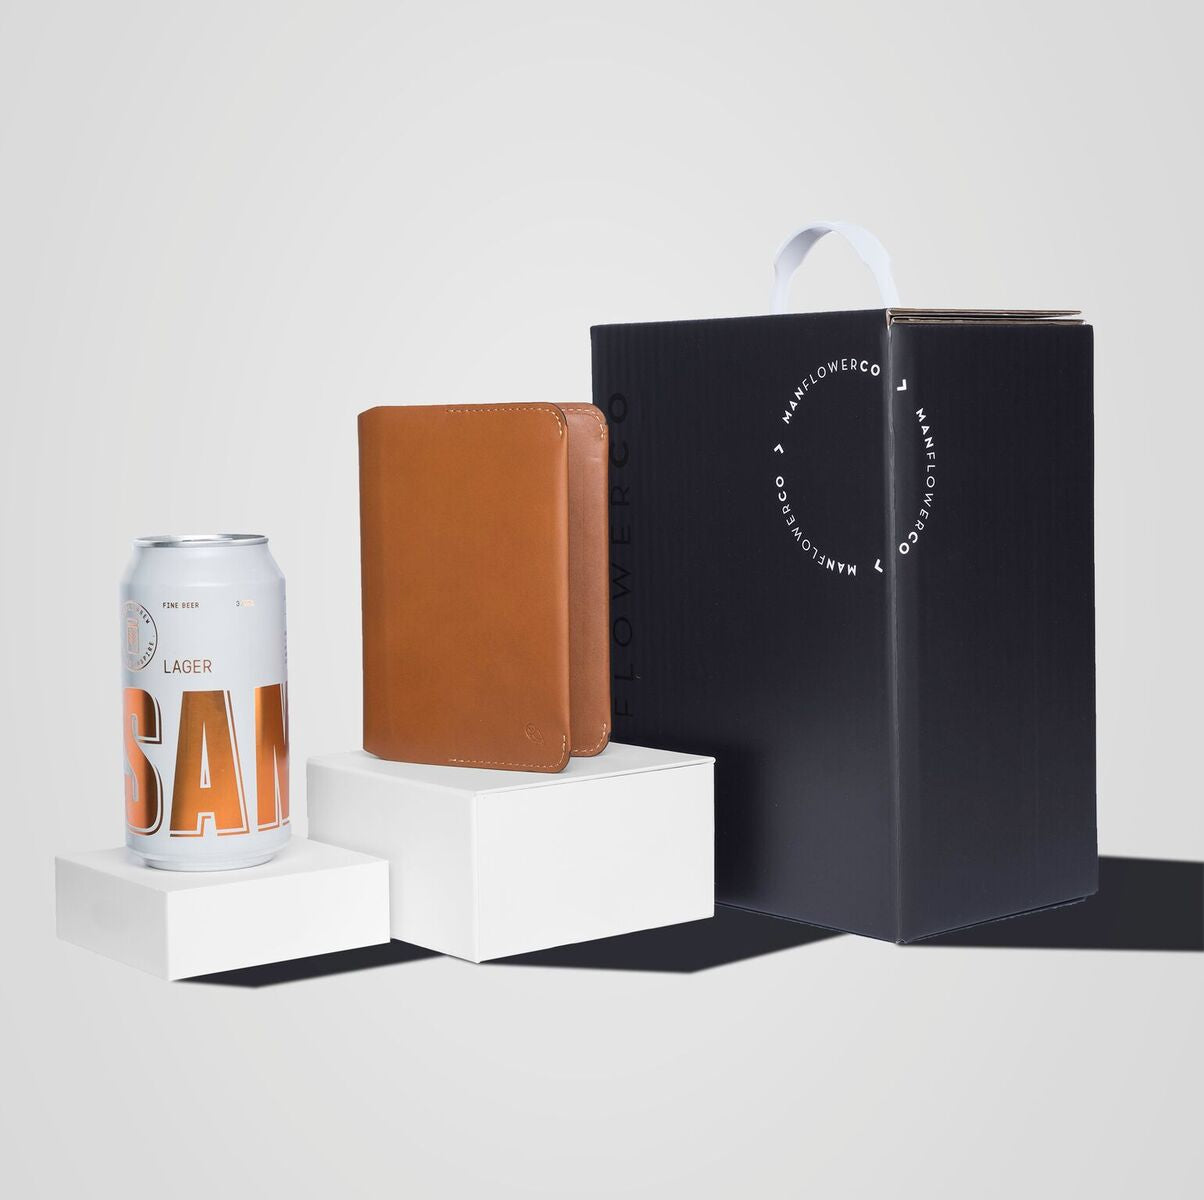 Image of Manflower Co gift box featuring Bellroy Notebook Cover.